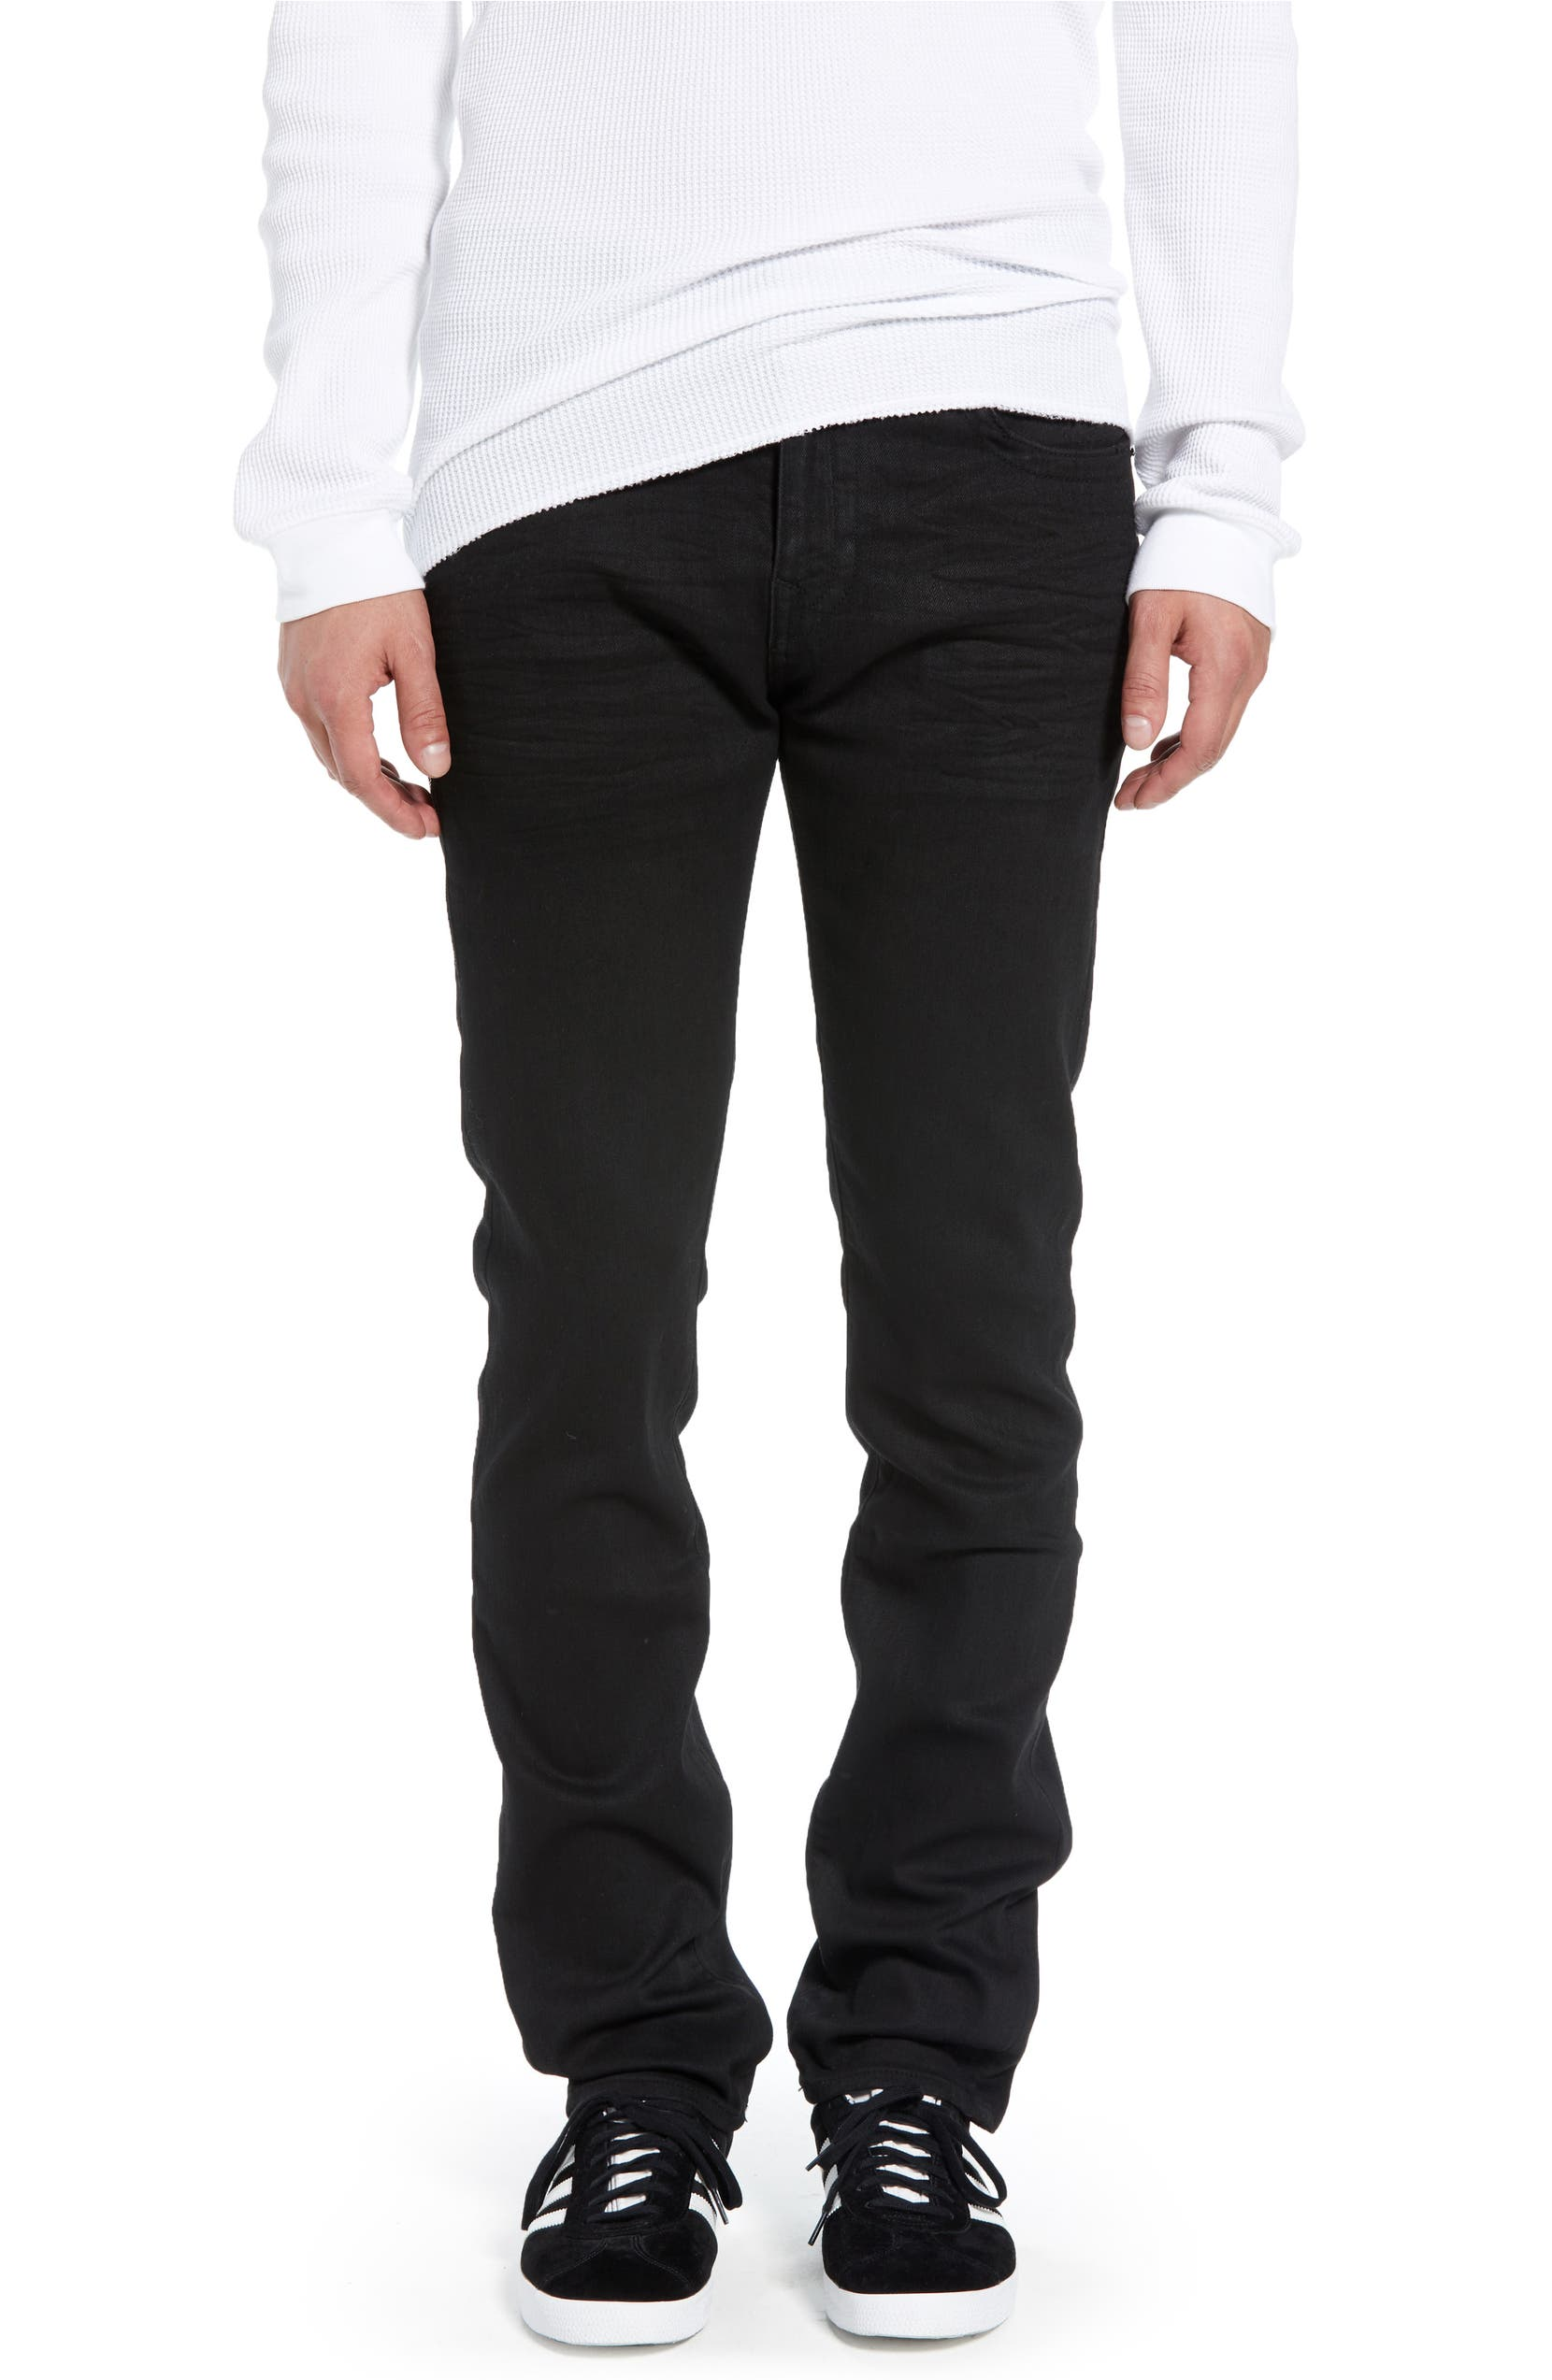 6f01e8b71e65 True Religion Brand Jeans Rocco Skinny Fit Jeans (Midnight Black Coated) |  Nordstrom